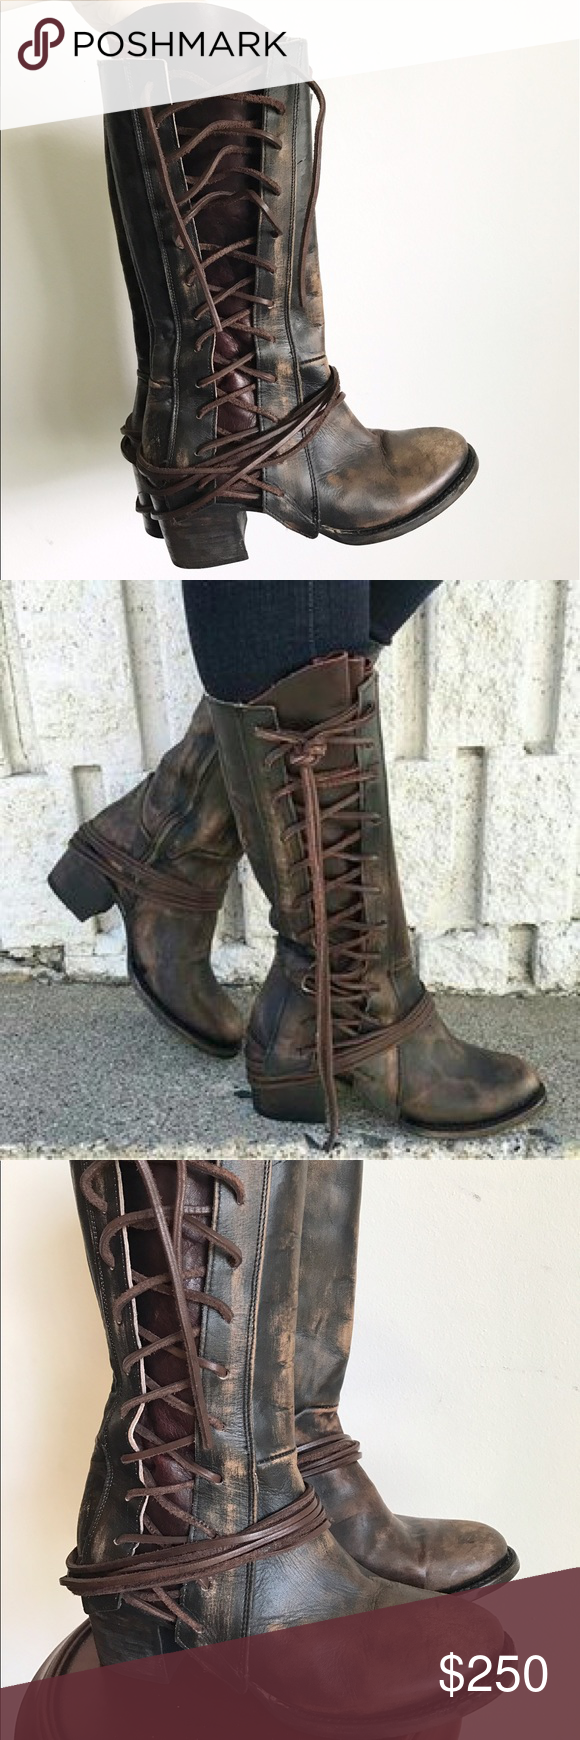 b21cbcf6645 Freebird by Steve Madden Cash Leather Lace Up Boot Freebird by ...